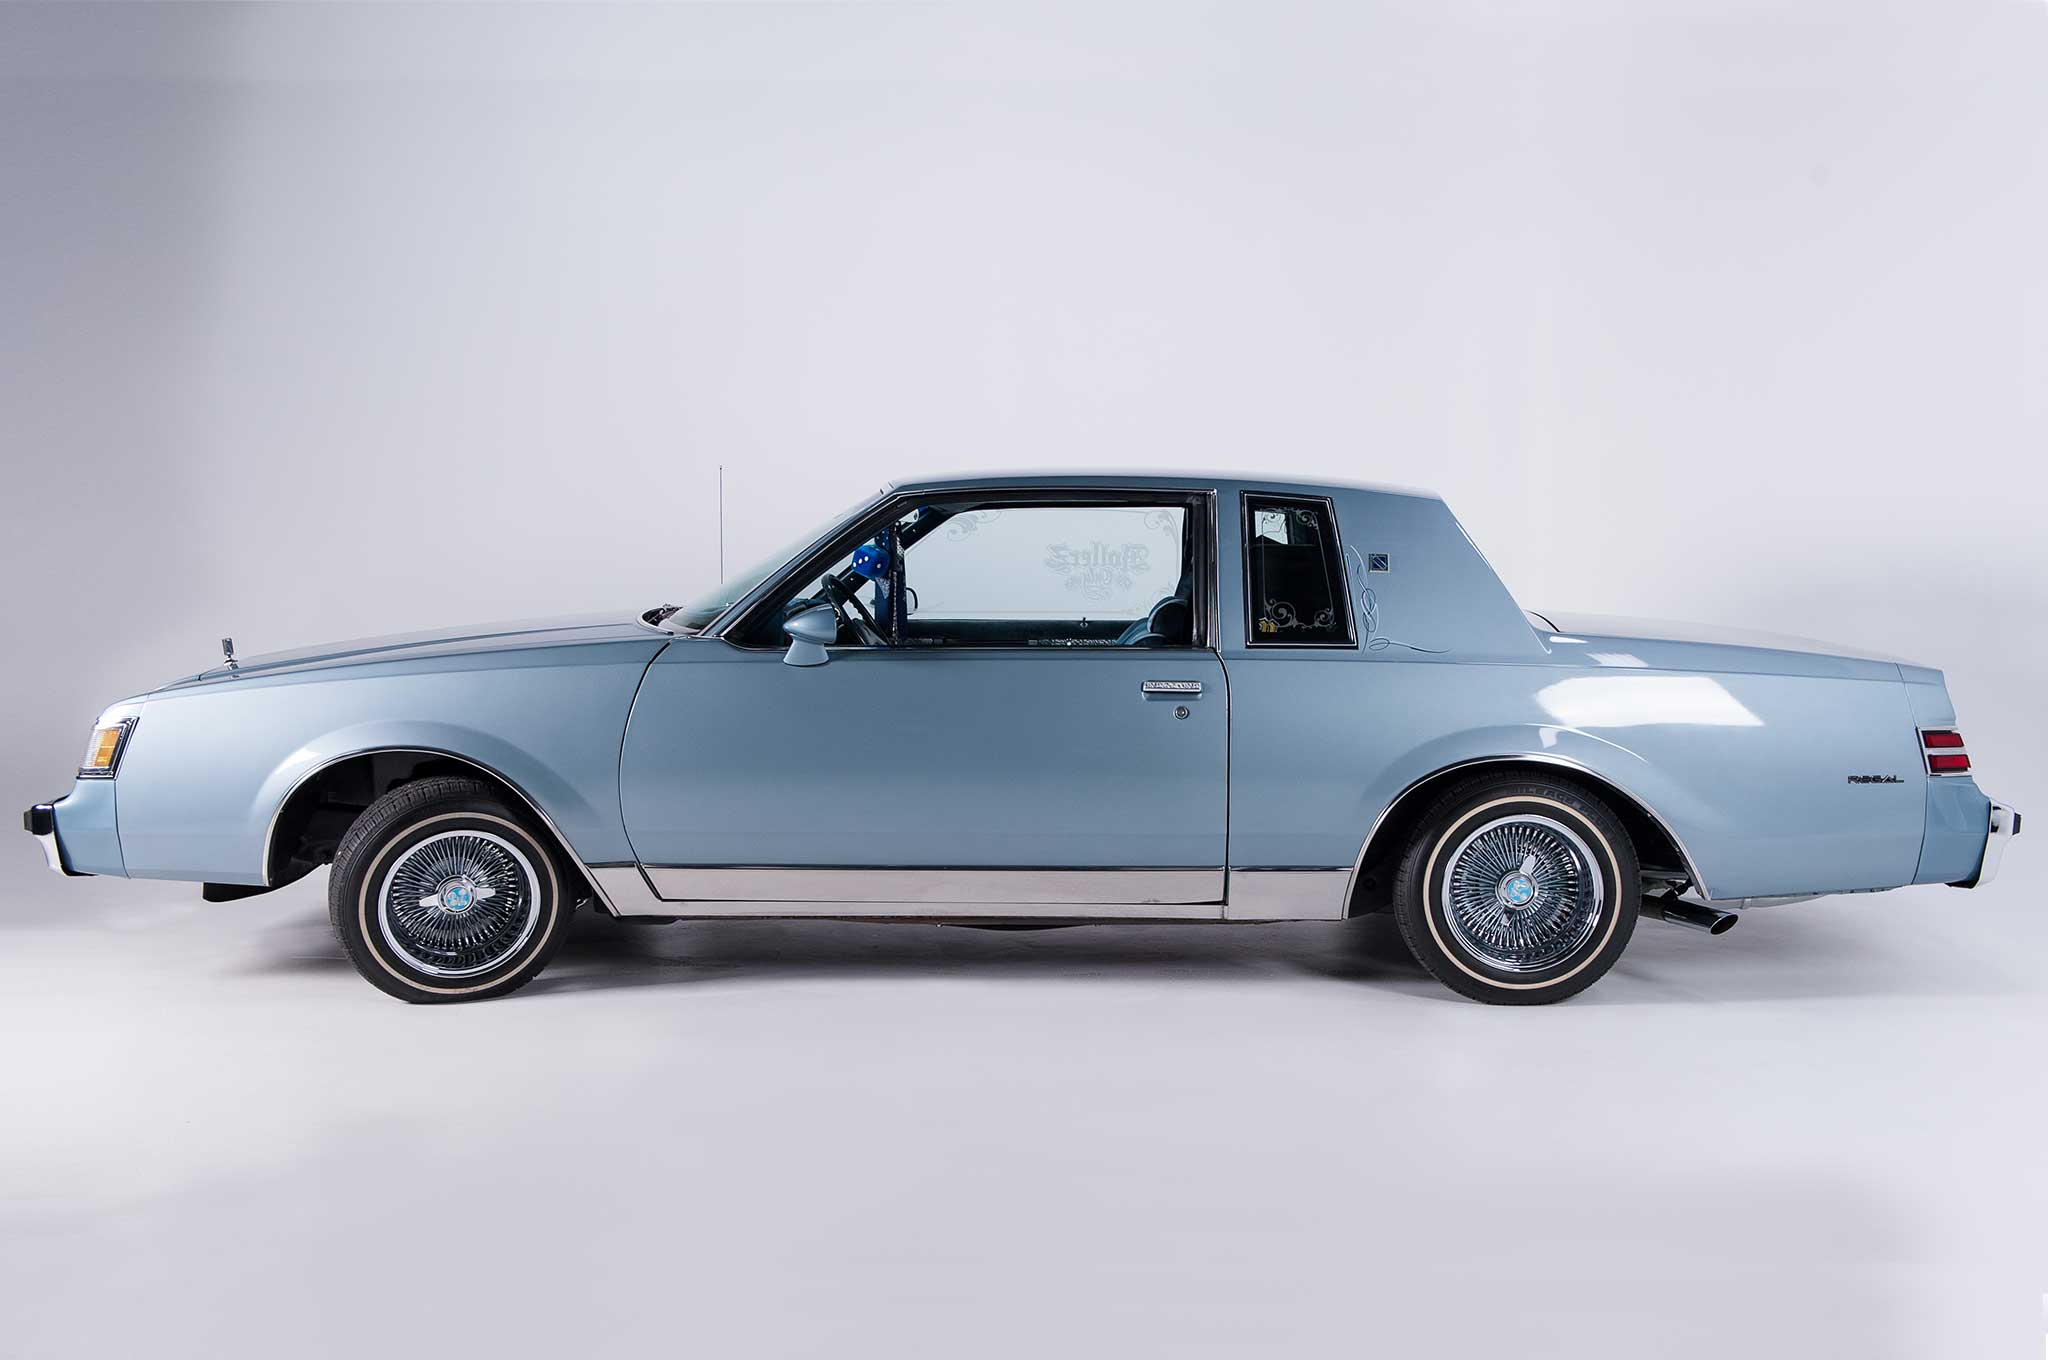 1986 Buick Regal >> A Polish Lowrider: 1986 Buick Regal